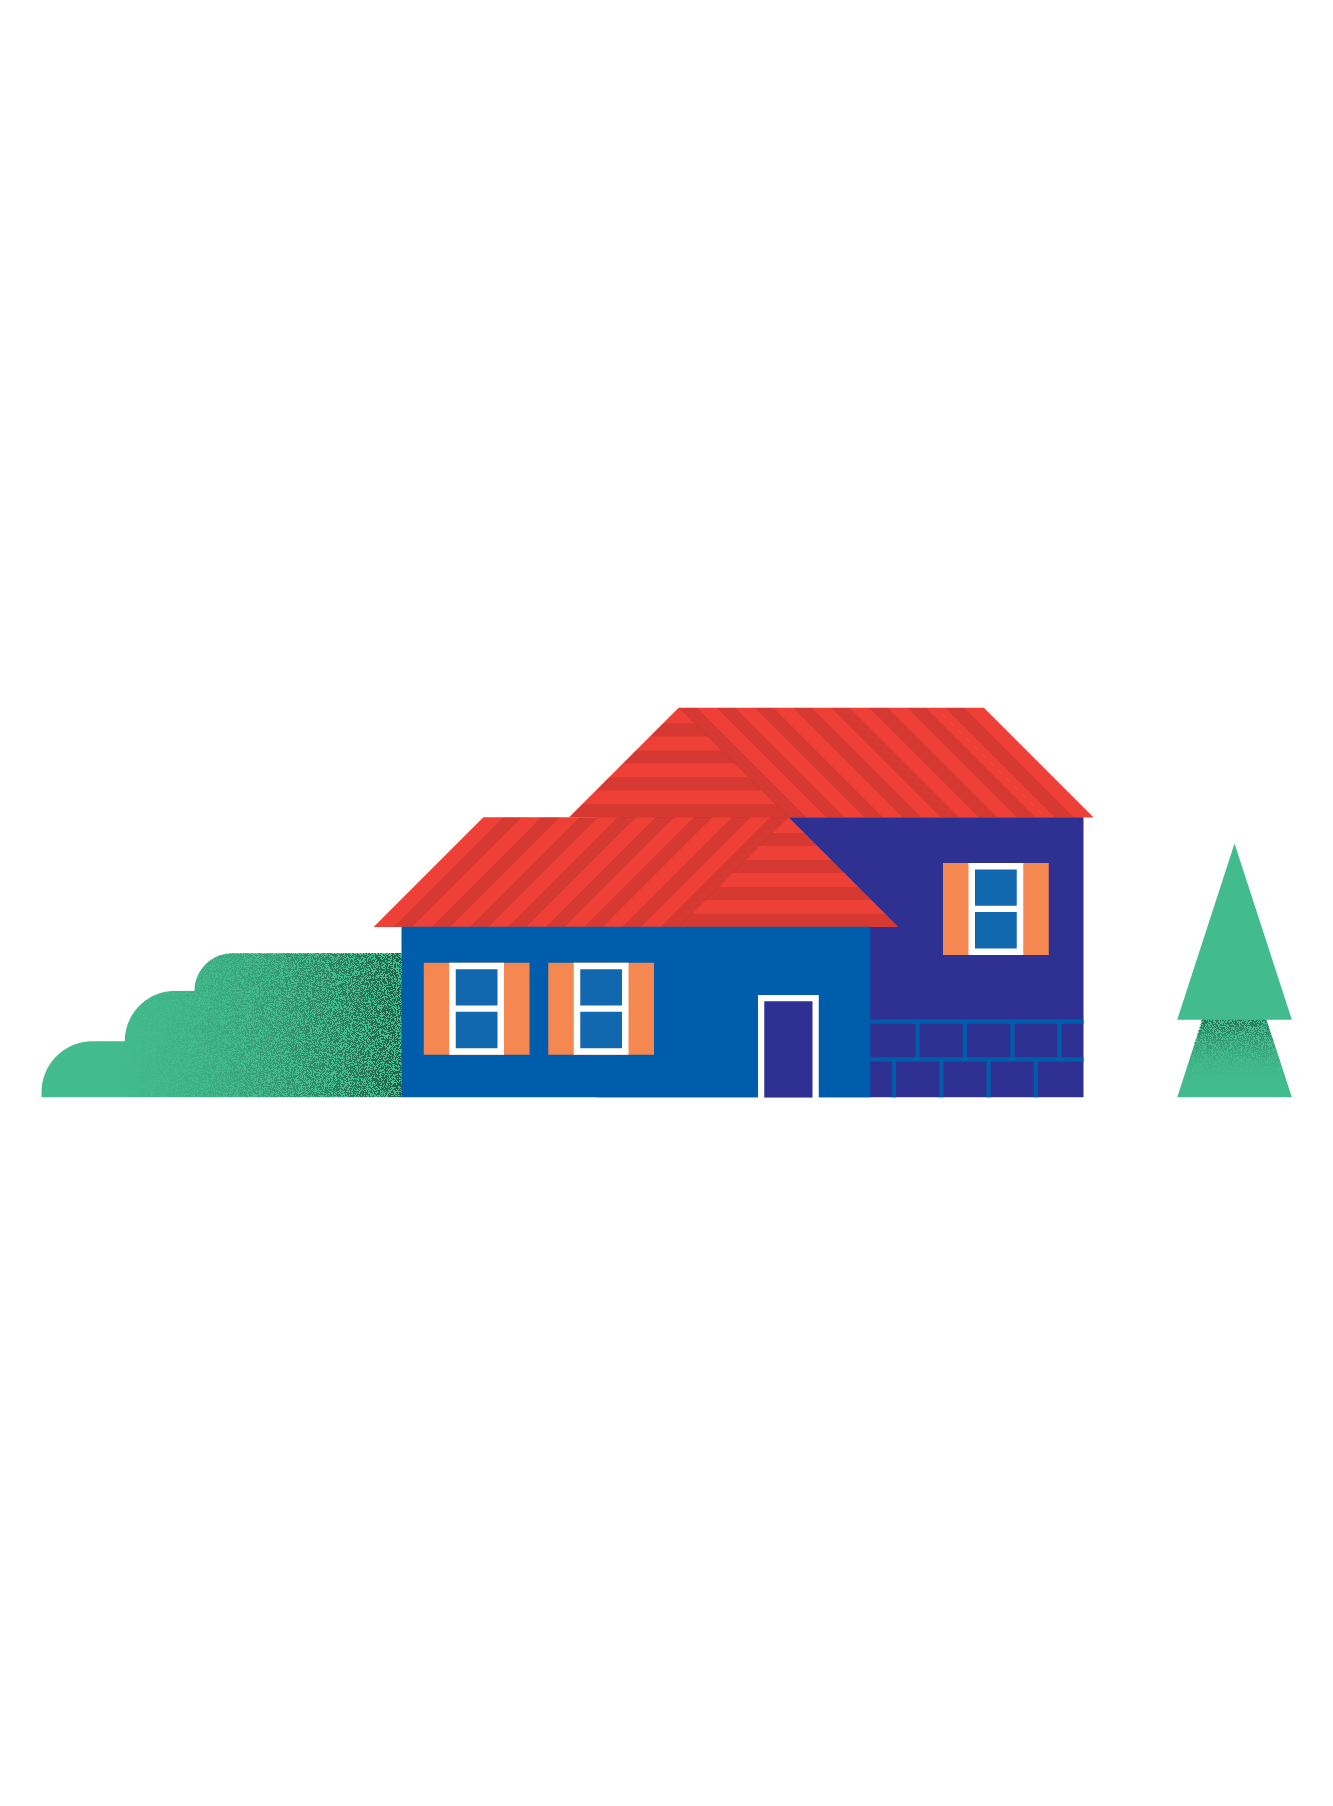 Illustration of a house and a tree